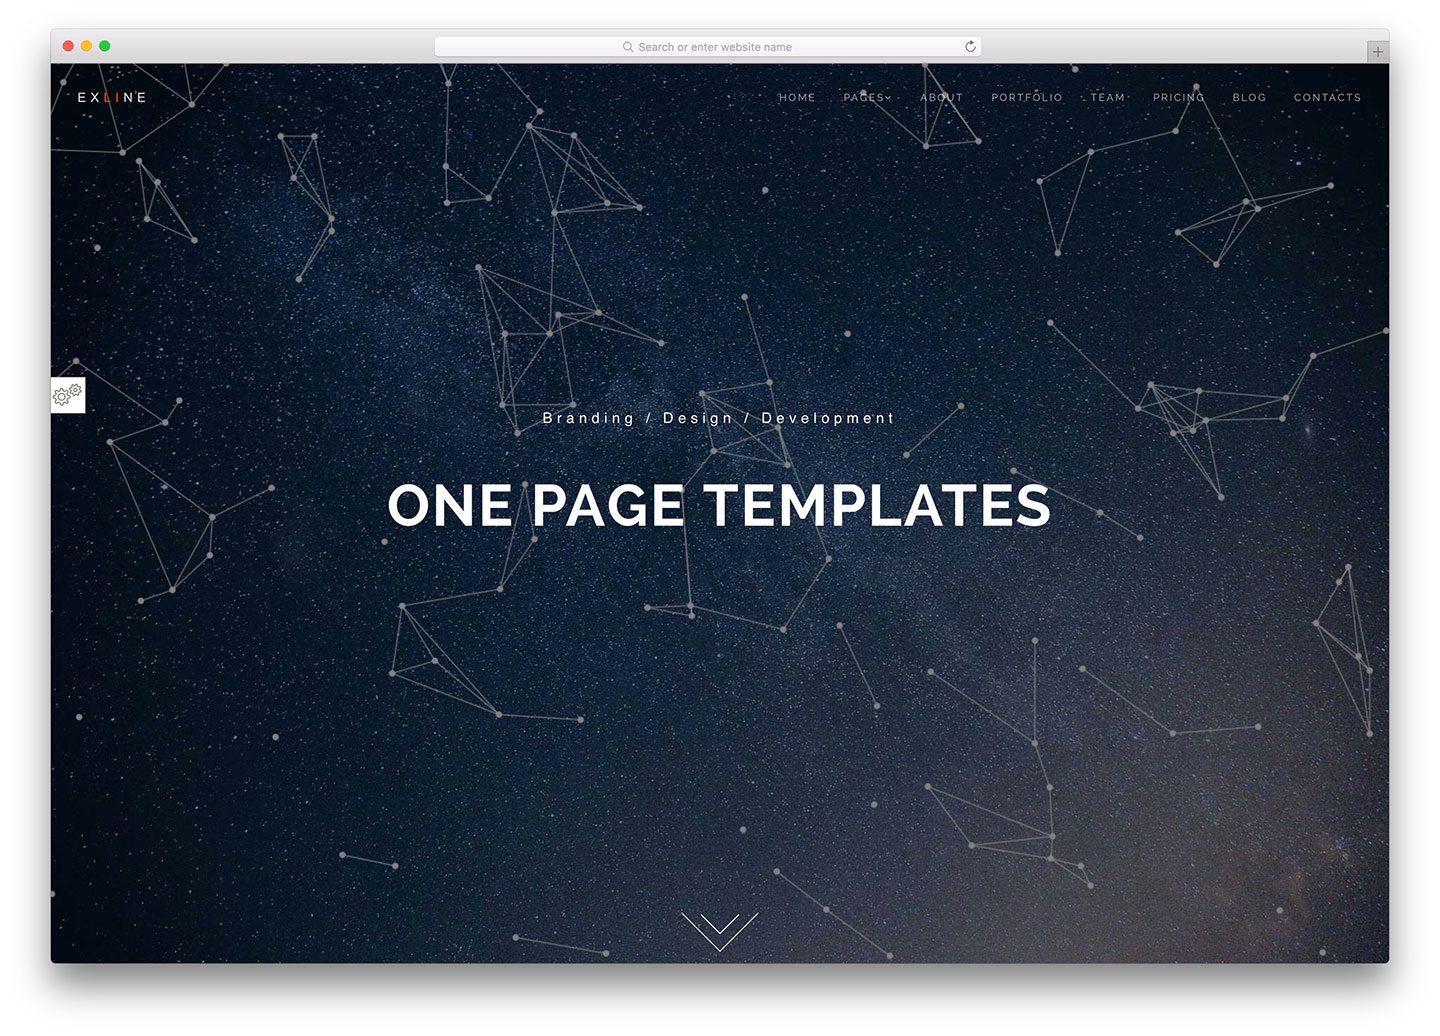 005 Archaicawful Creative One Page Website Template Free Download Picture Full